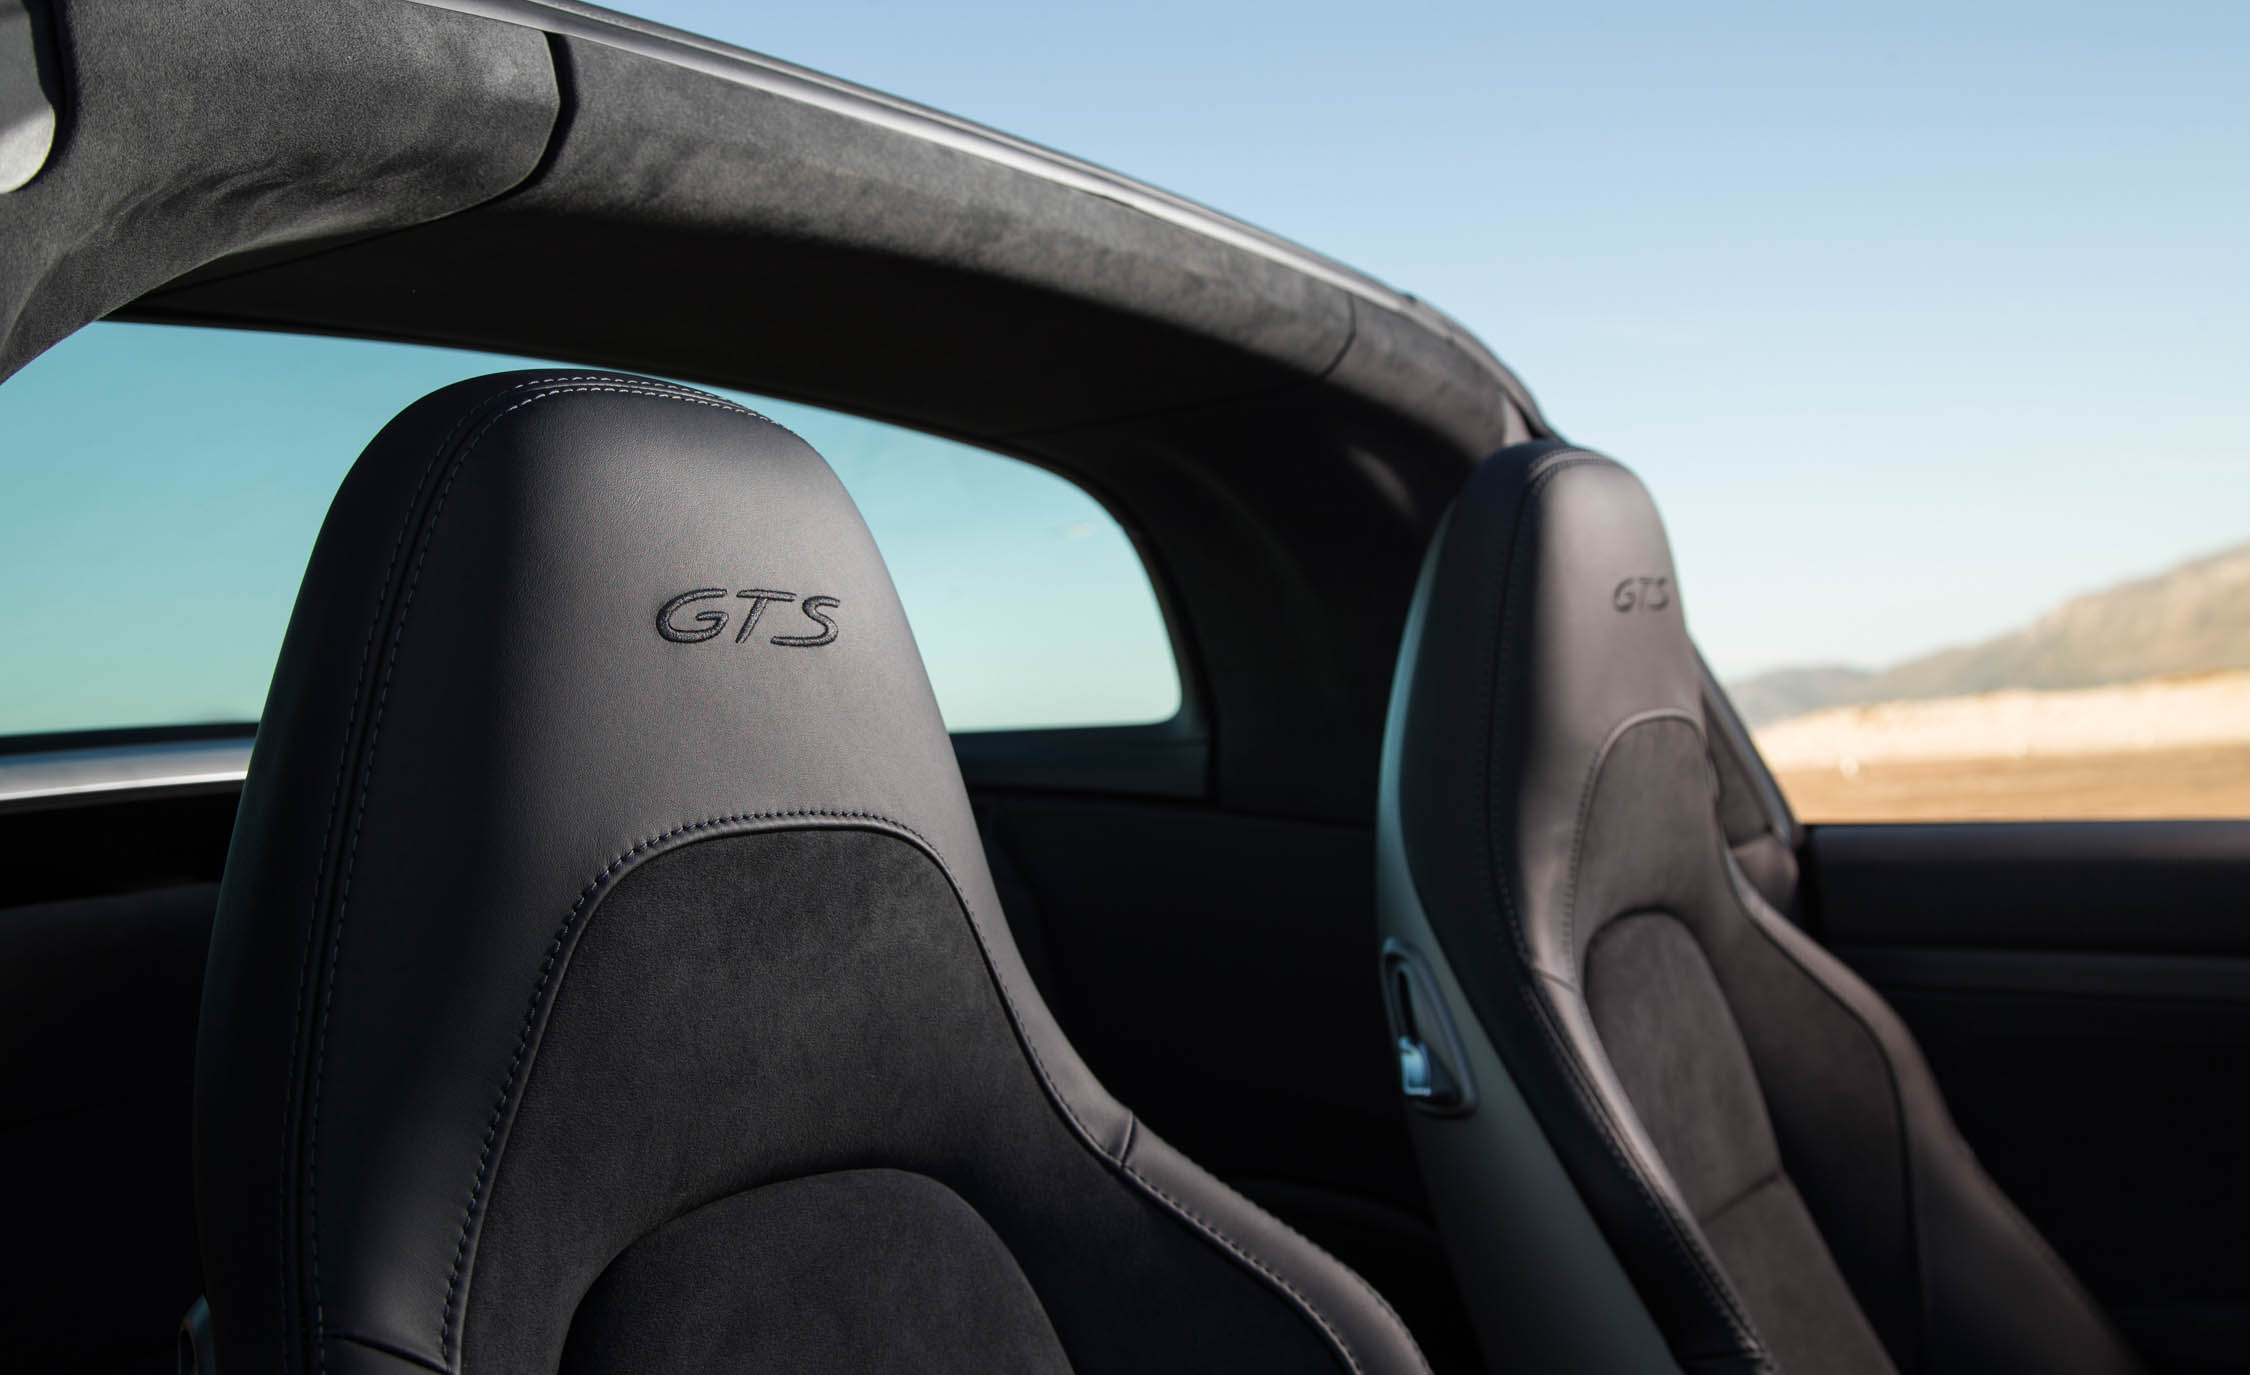 2017 Porsche 911 Targa 4 GTS Interior Seats Headrest (Photo 70 of 97)